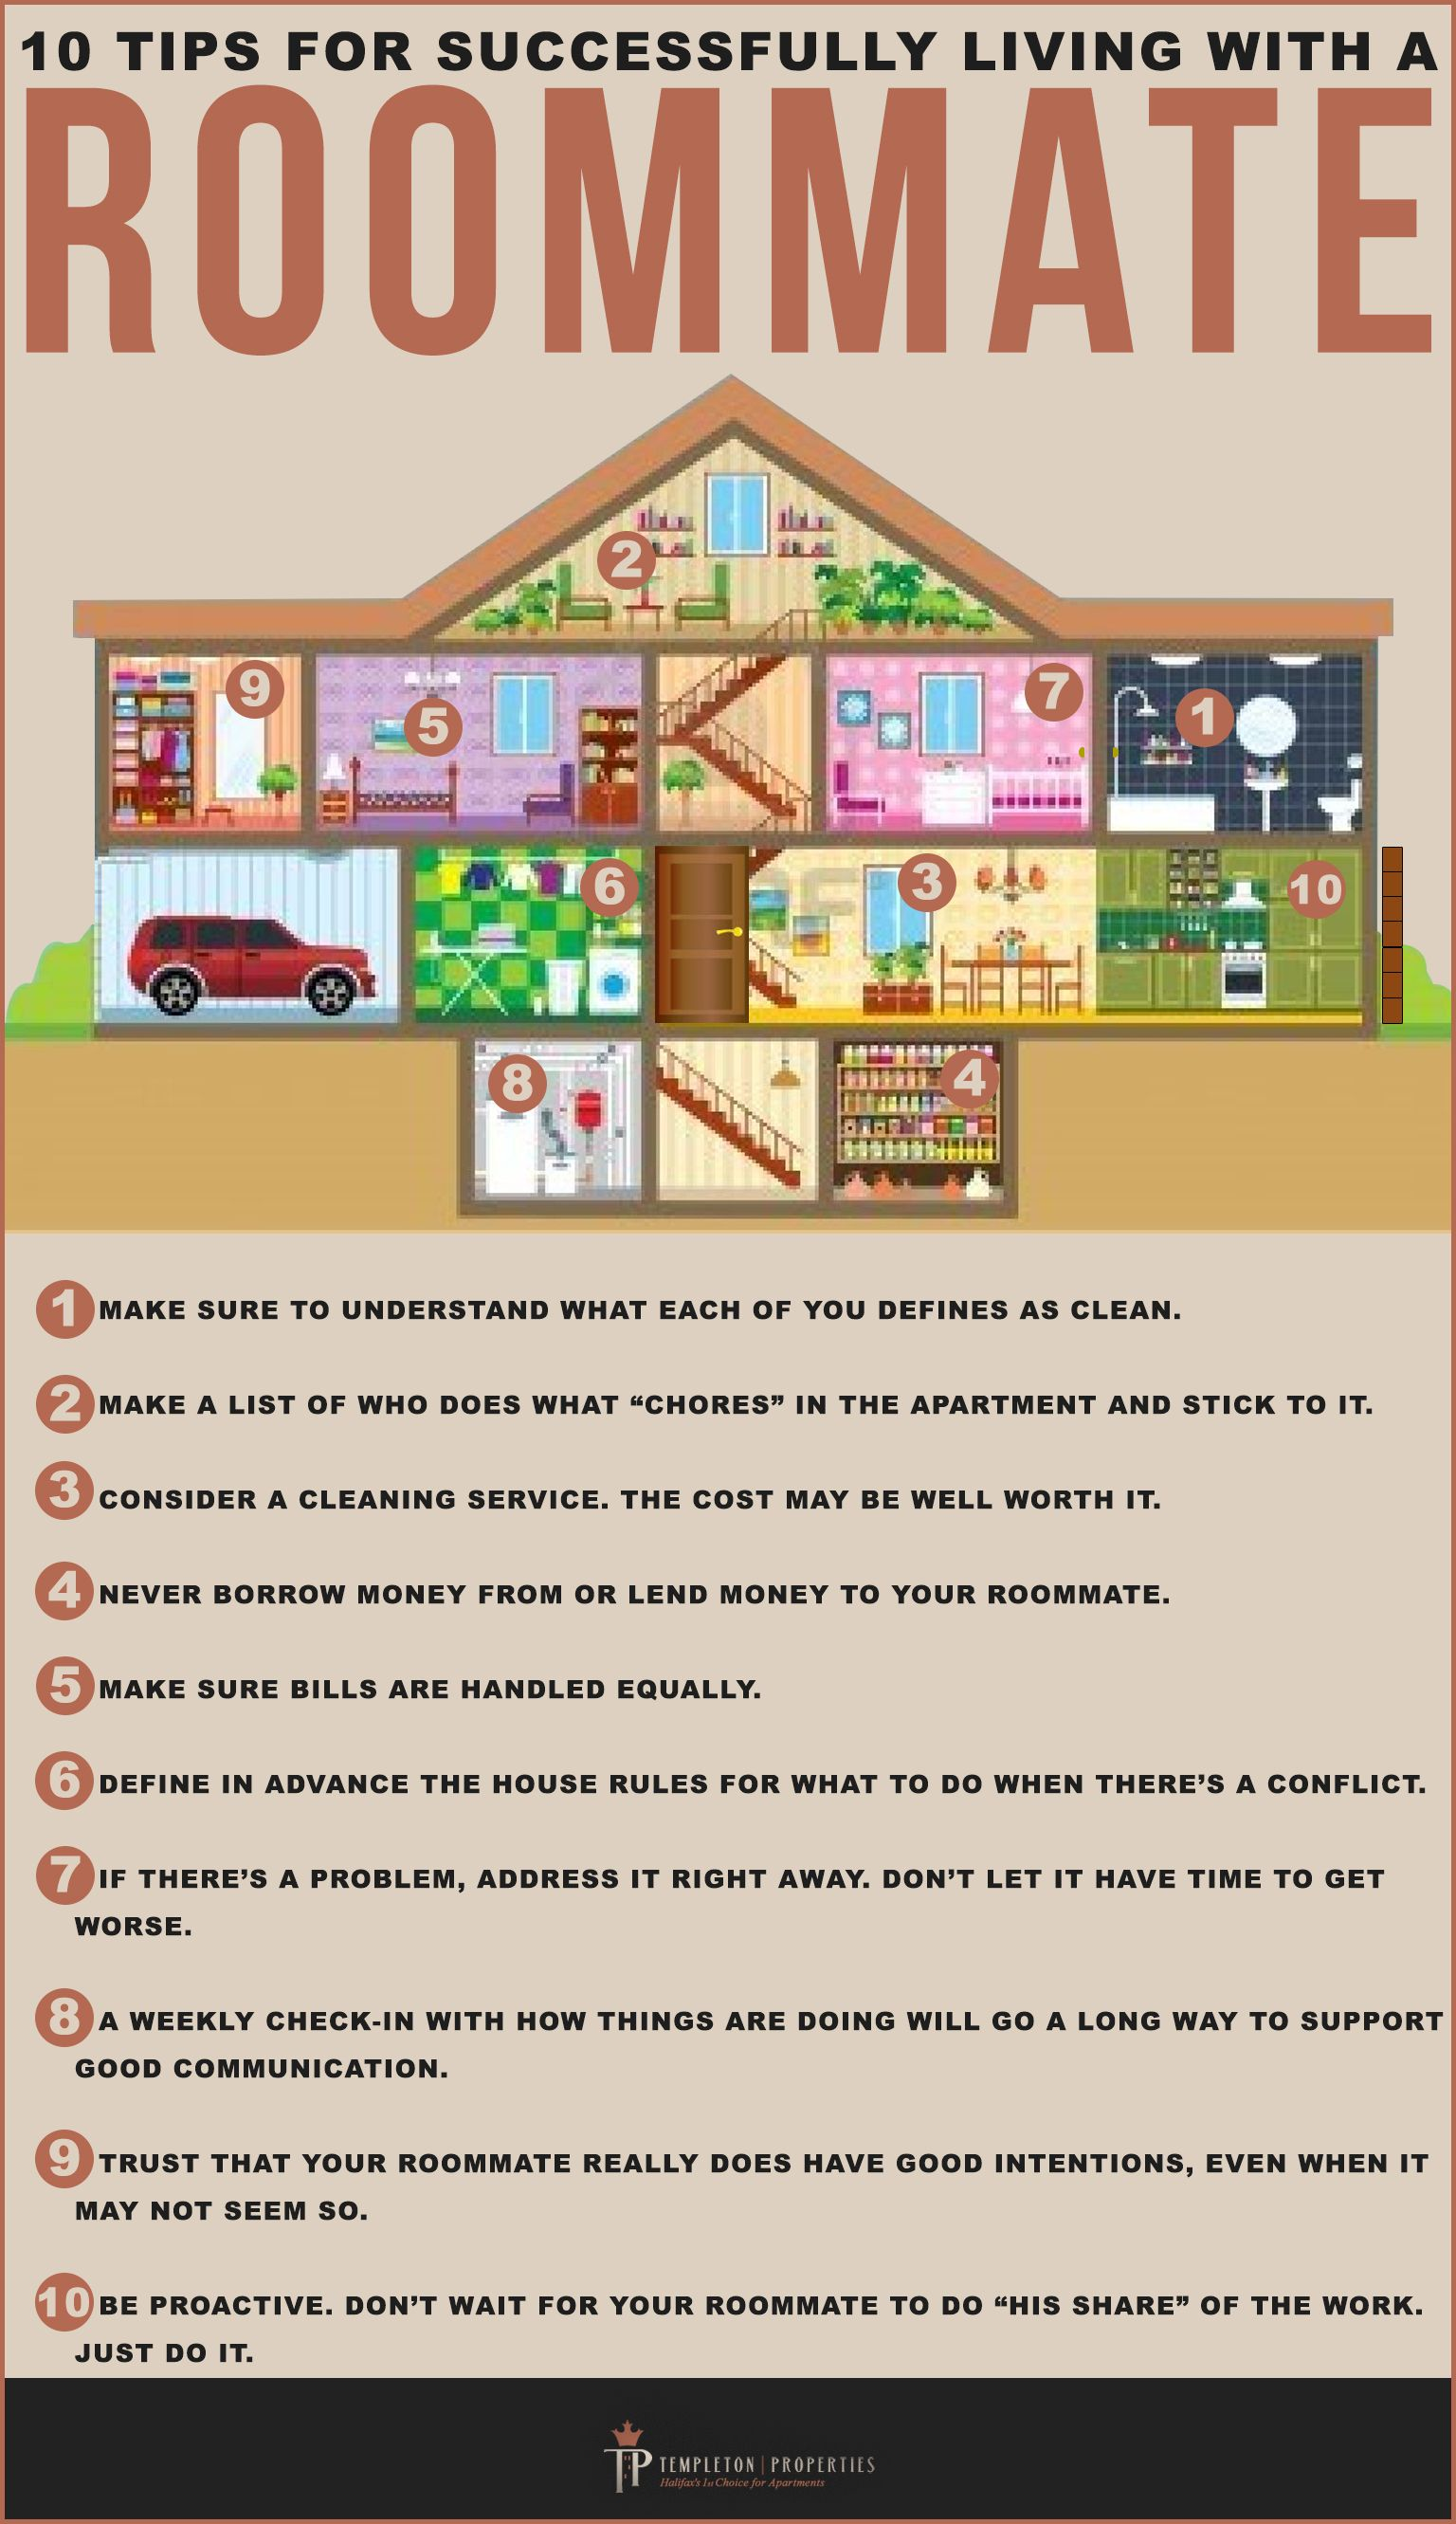 Templeton Properties Infographic Living With A Roommate Apartment With Roommates Roommate Friends Apartment House rules for roommates template